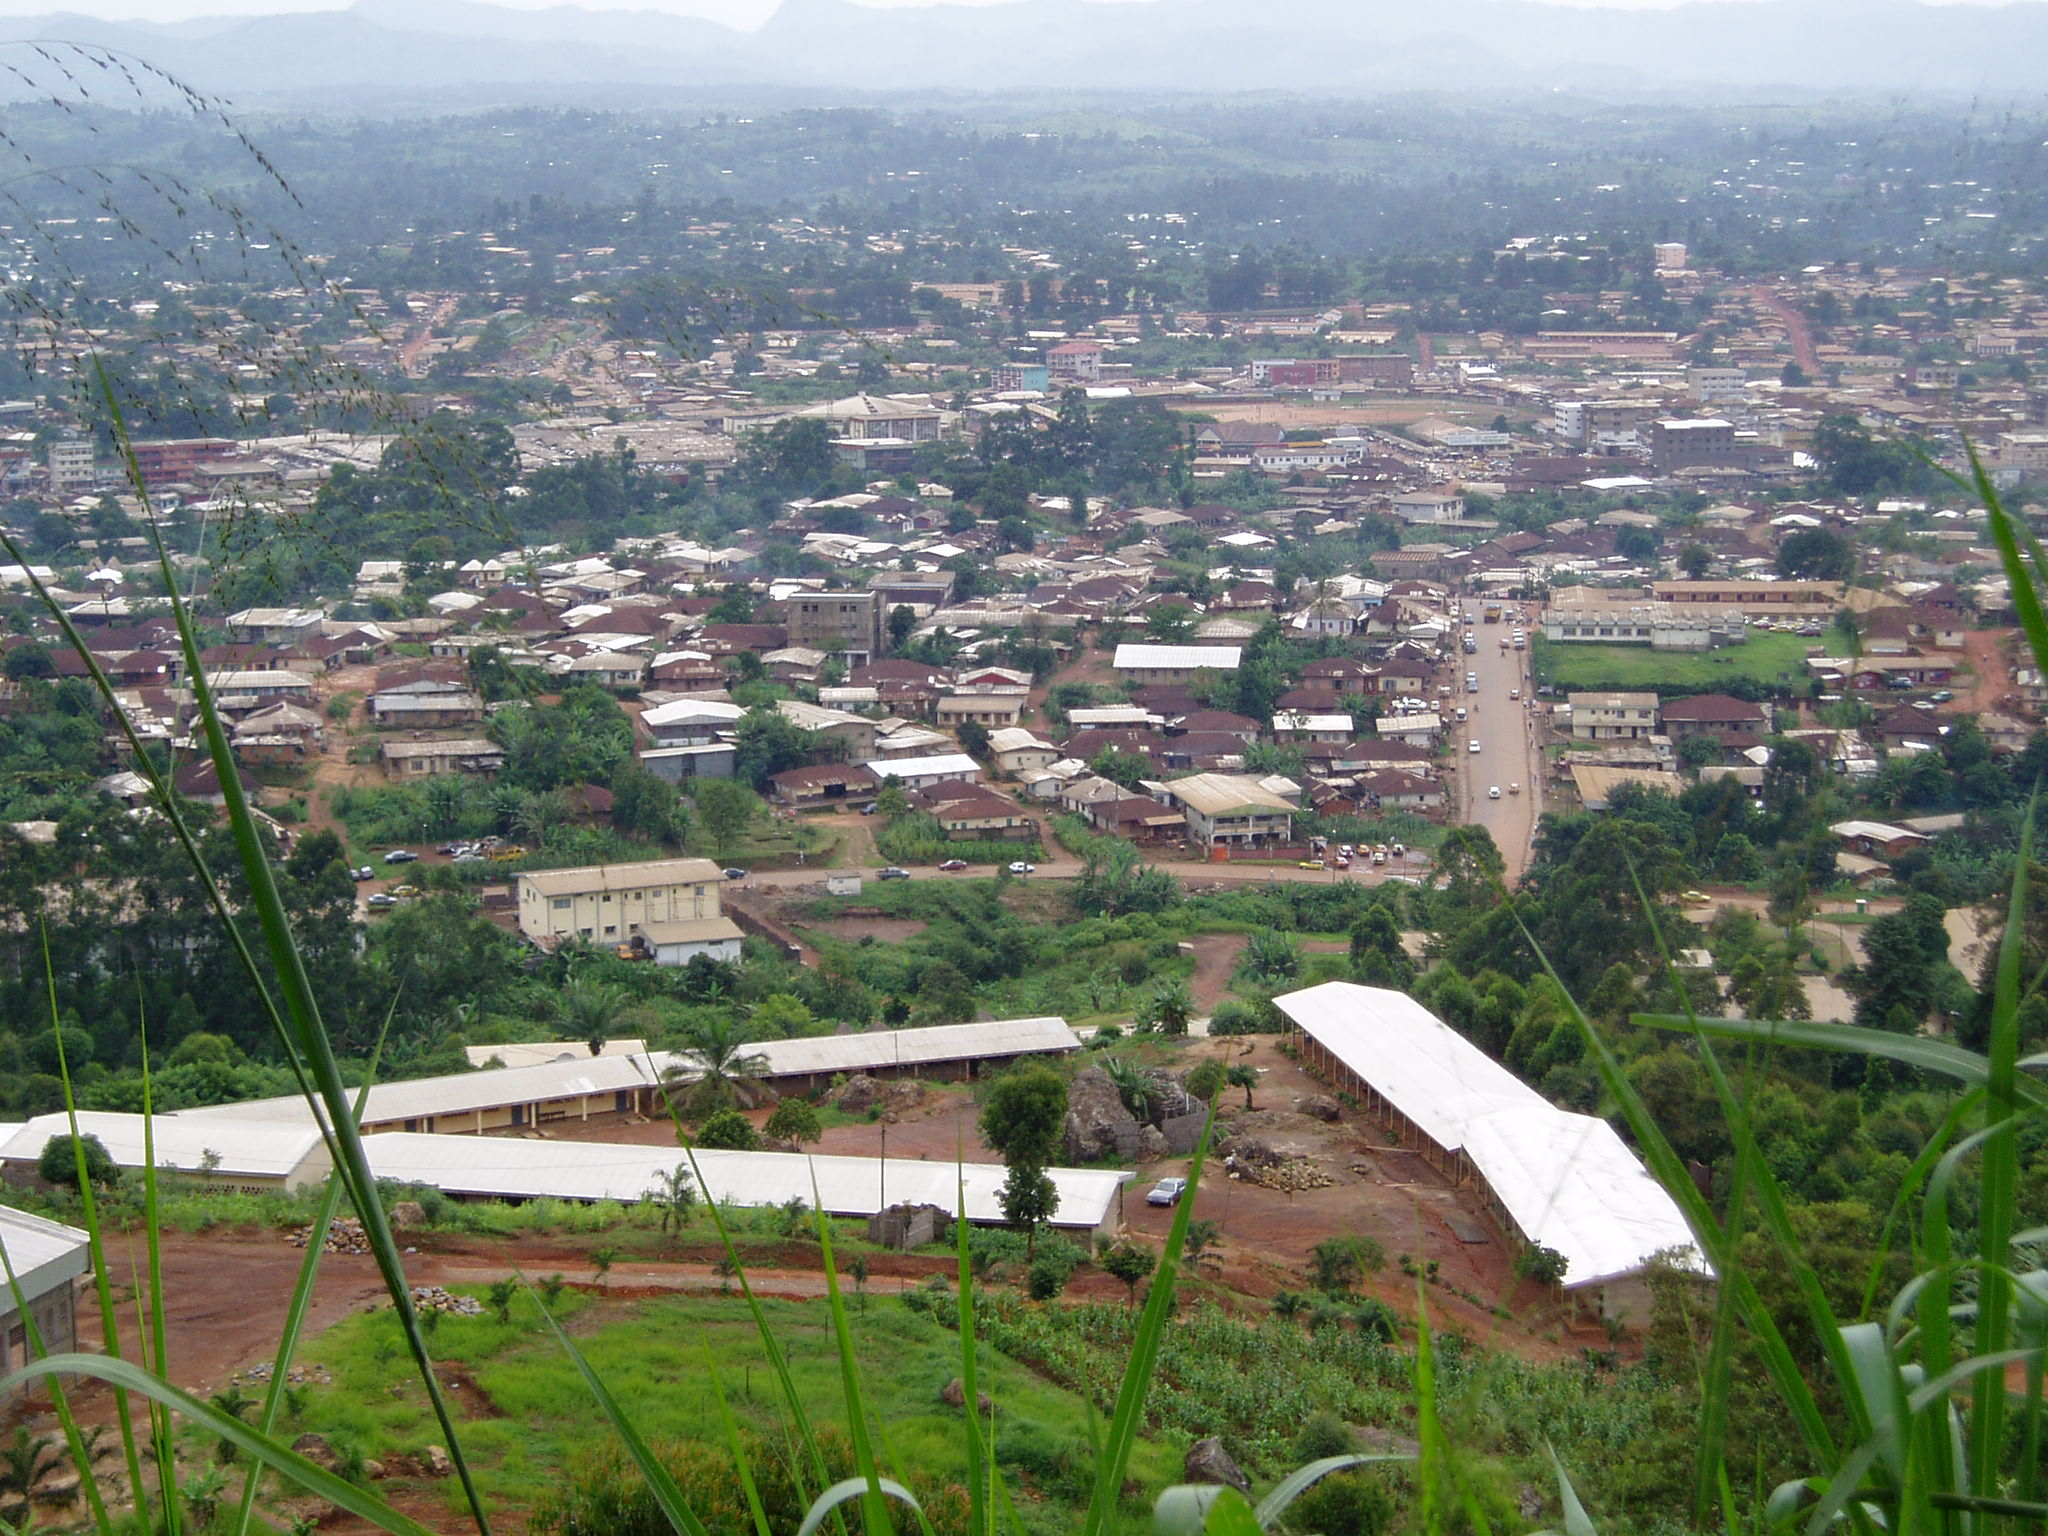 bamenda dating Bamenda, cameroon: coordinates the archaeological site of shum laka is the most prominent rockshelter site in the stratigraphic dating of surface and near.